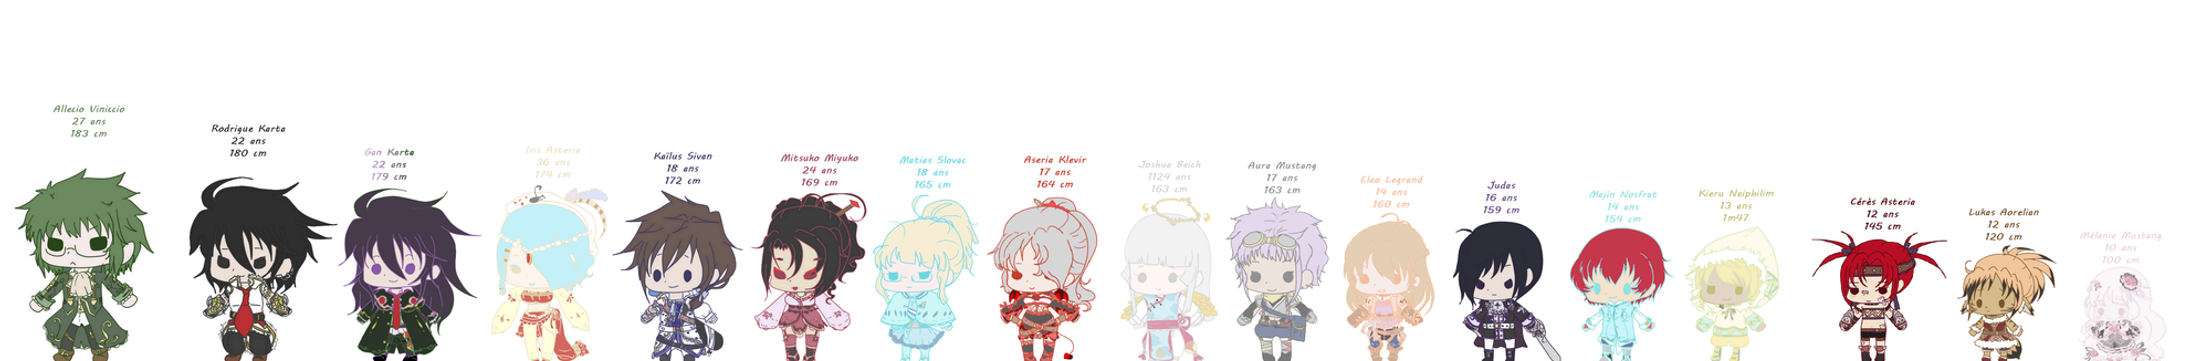 Chibi character tales of Memory +UP nouveau chibi+ by Meruruu